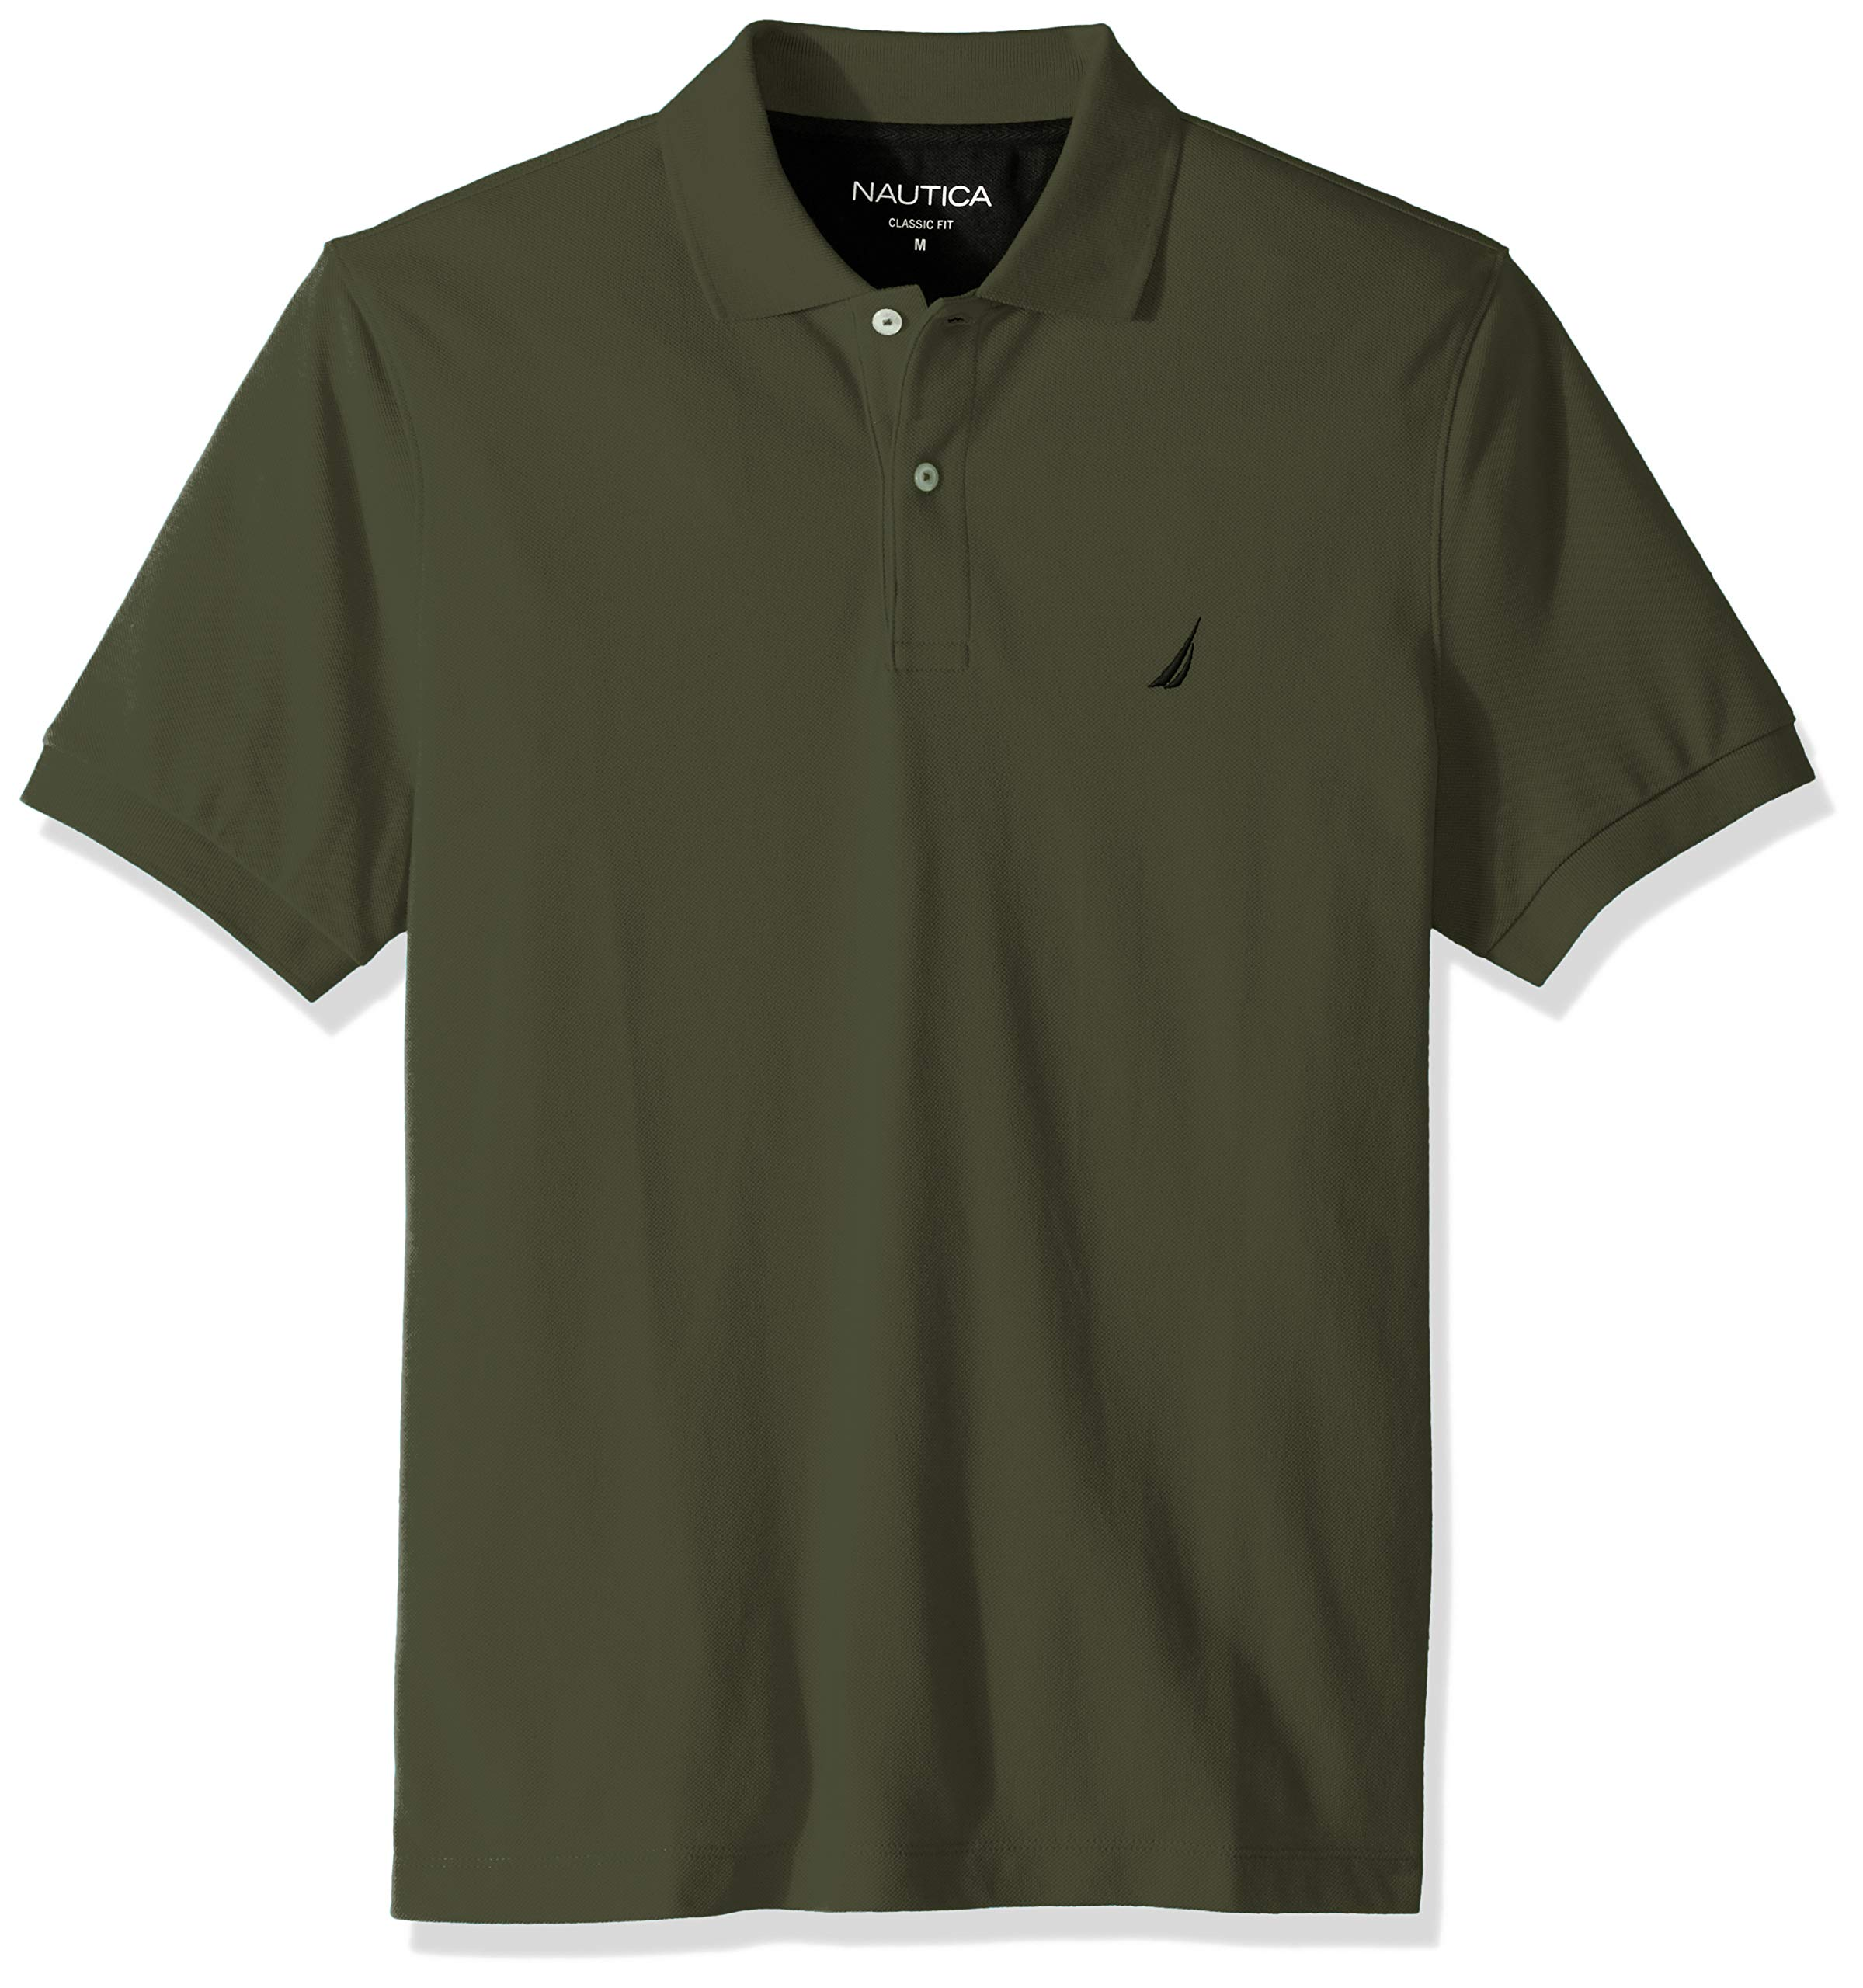 Nautica Men's Classic Short Sleeve Deck Polo Shirt, Pine Forest, X-Large